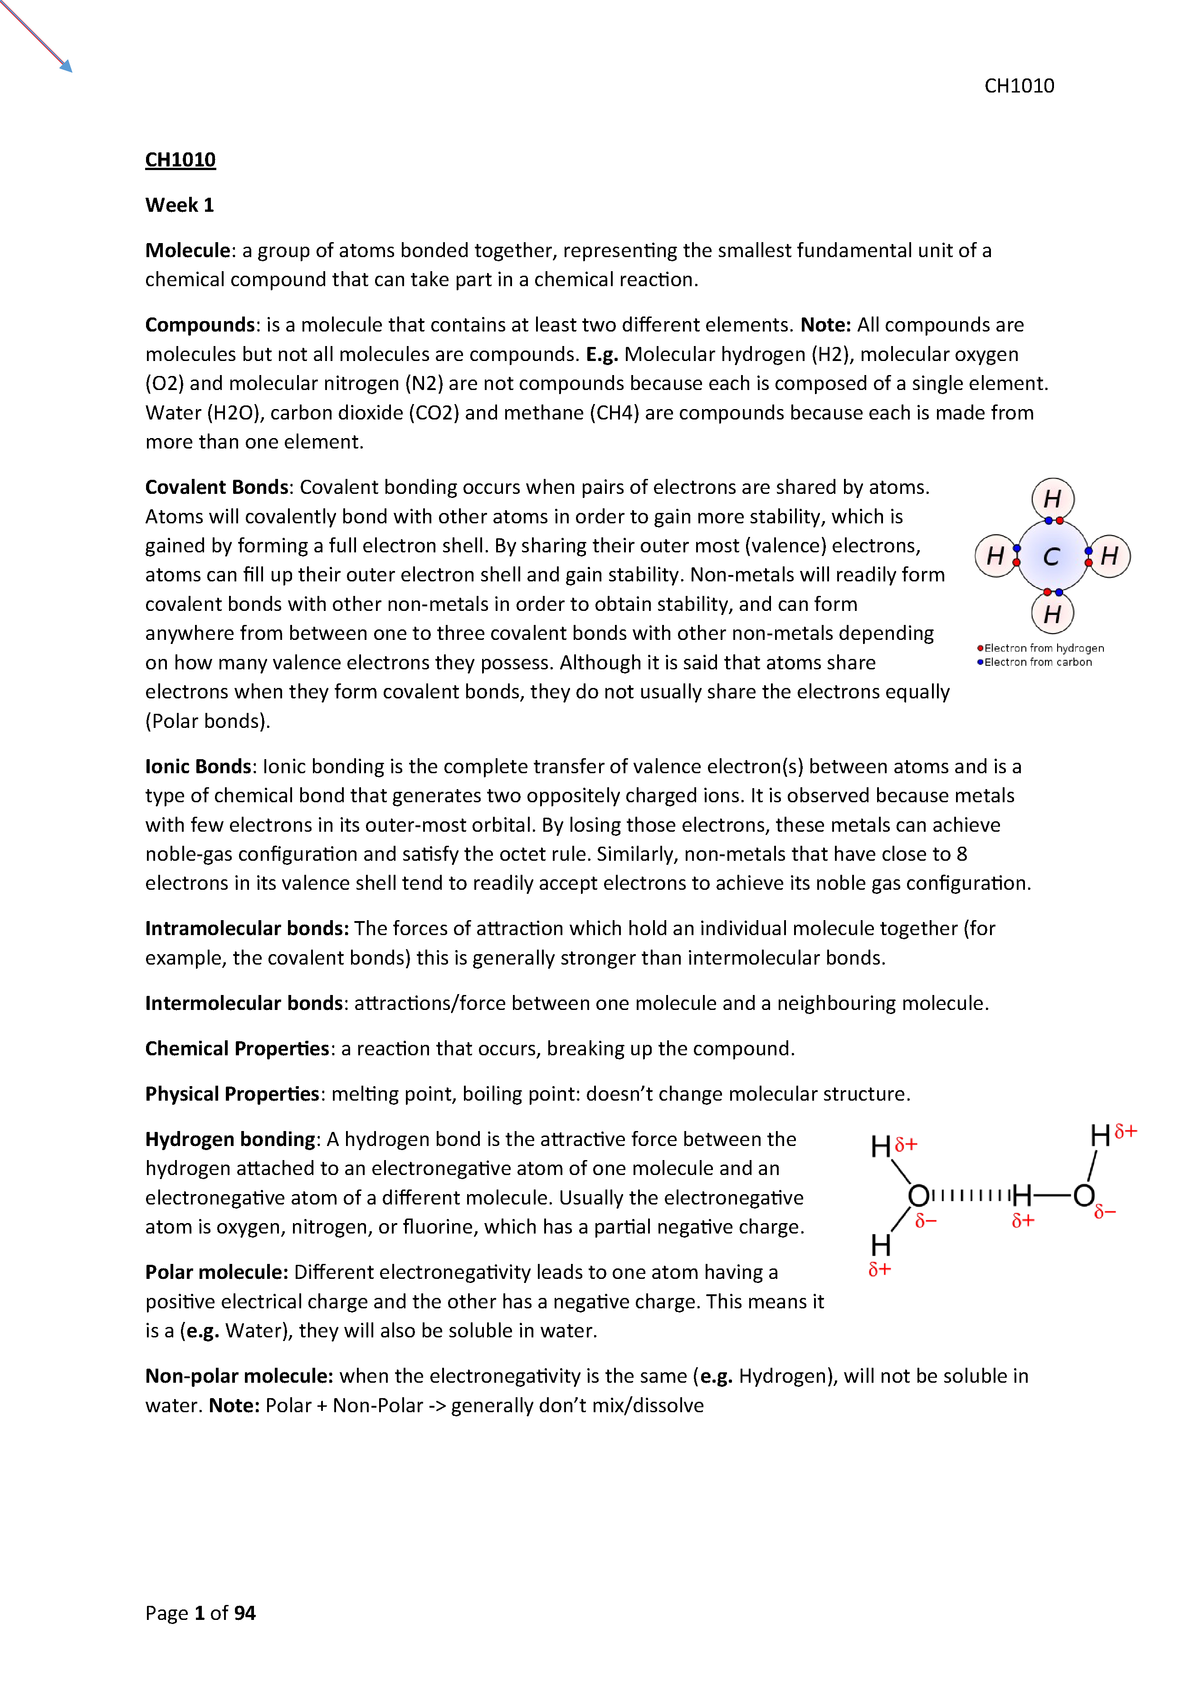 Ch1010 Typed Notes - CH1010:03: Biological Chemistry for